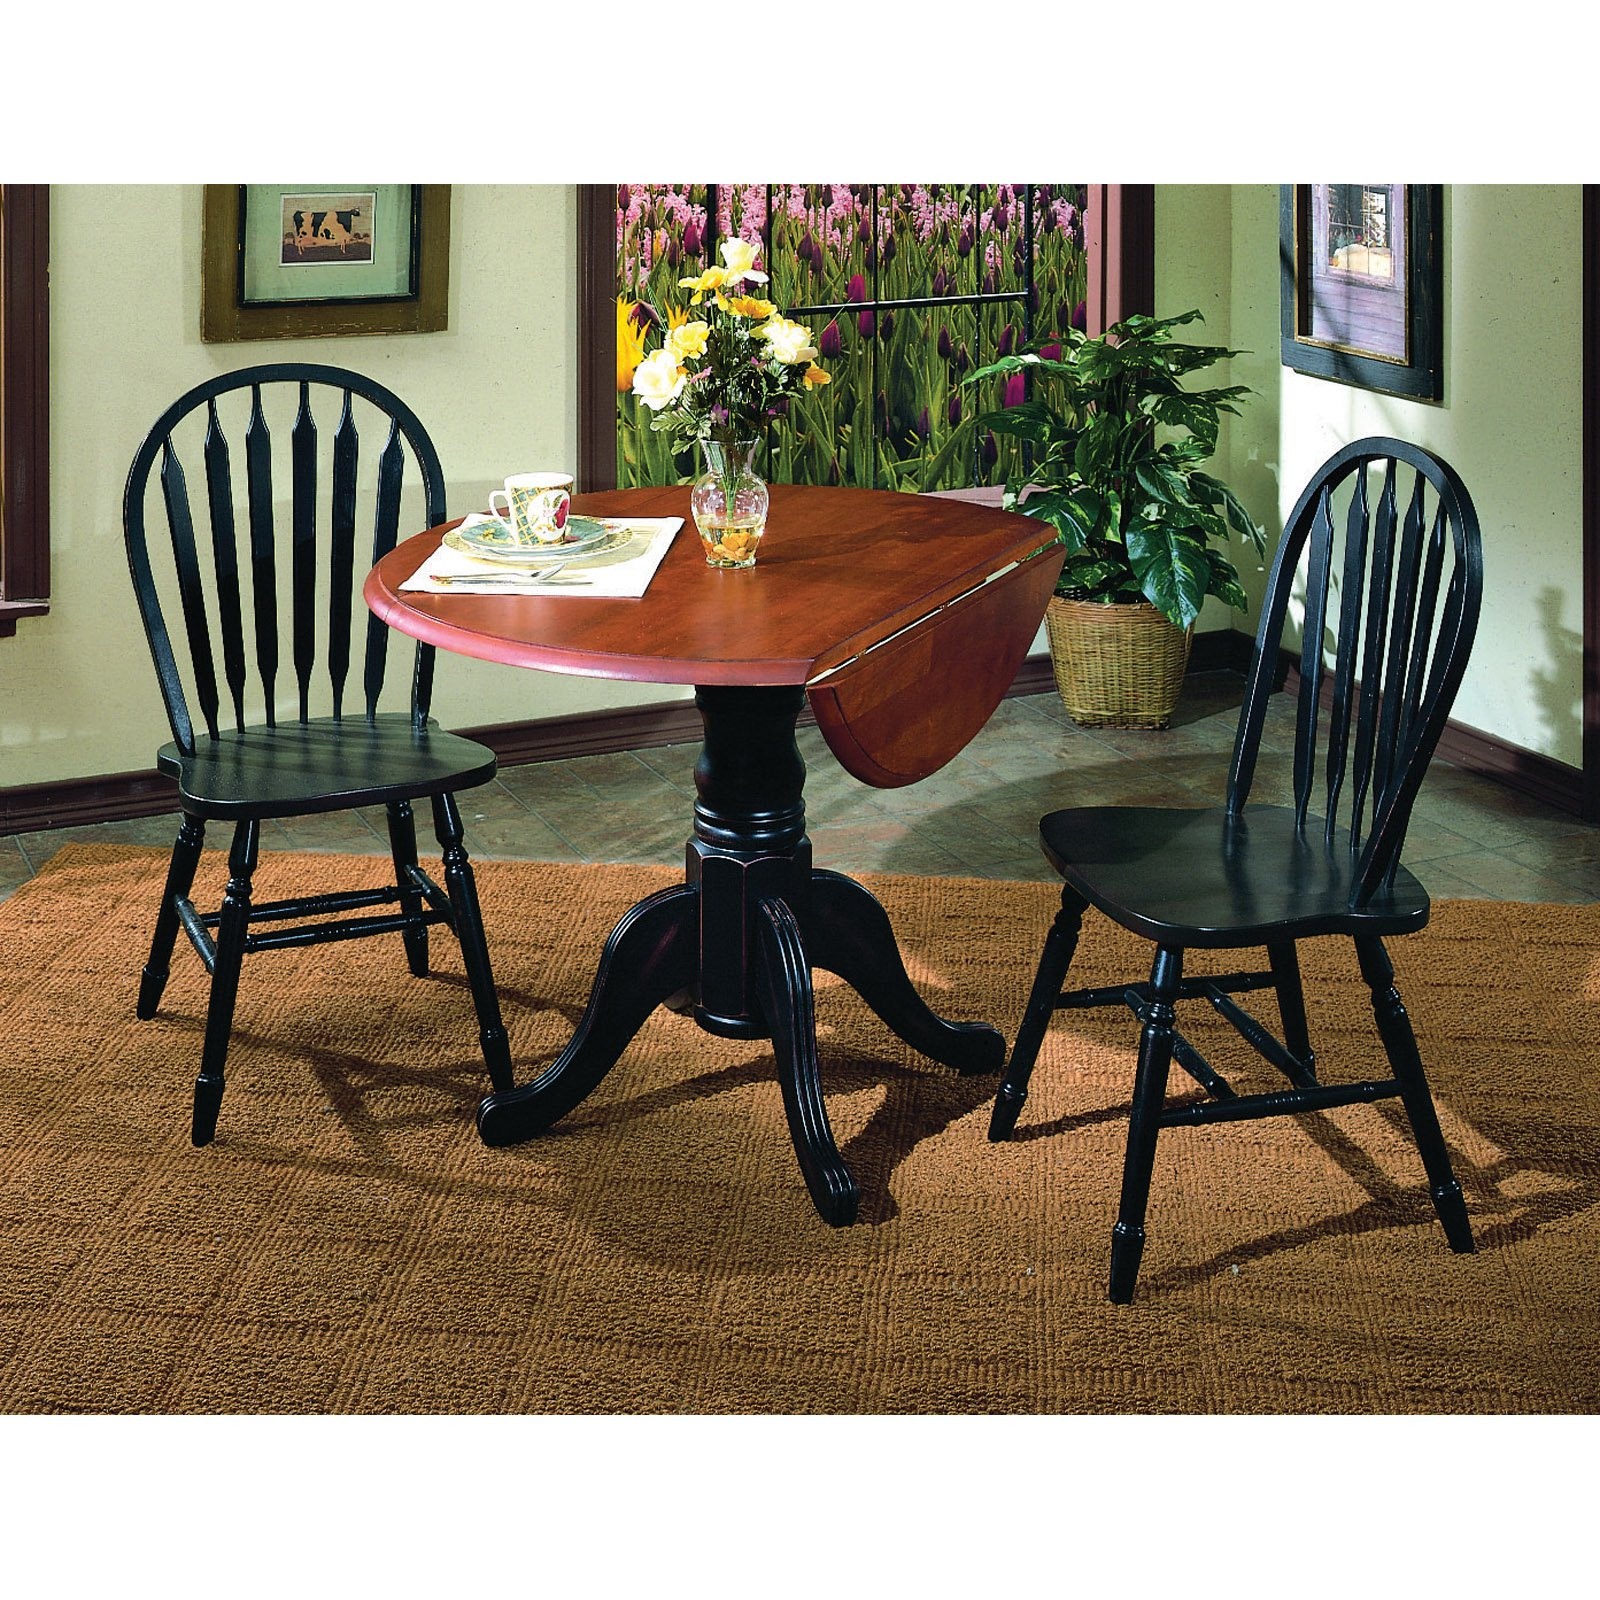 full pedestal wood dining round of center modern room size trestle ideas table inch